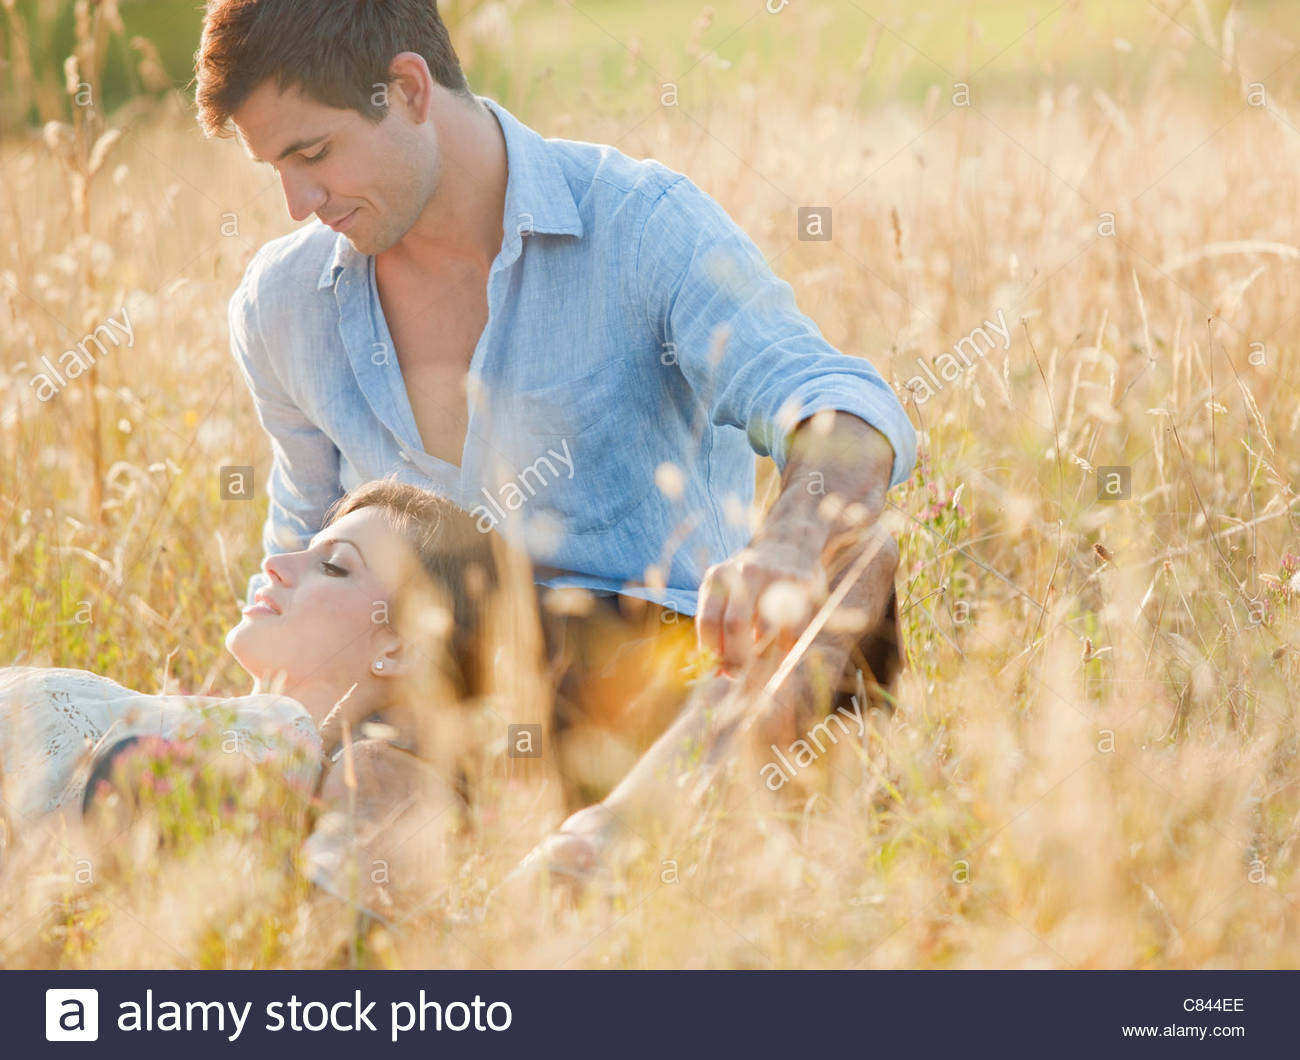 Smiling couple relaxing in wheatfield - Stock Image